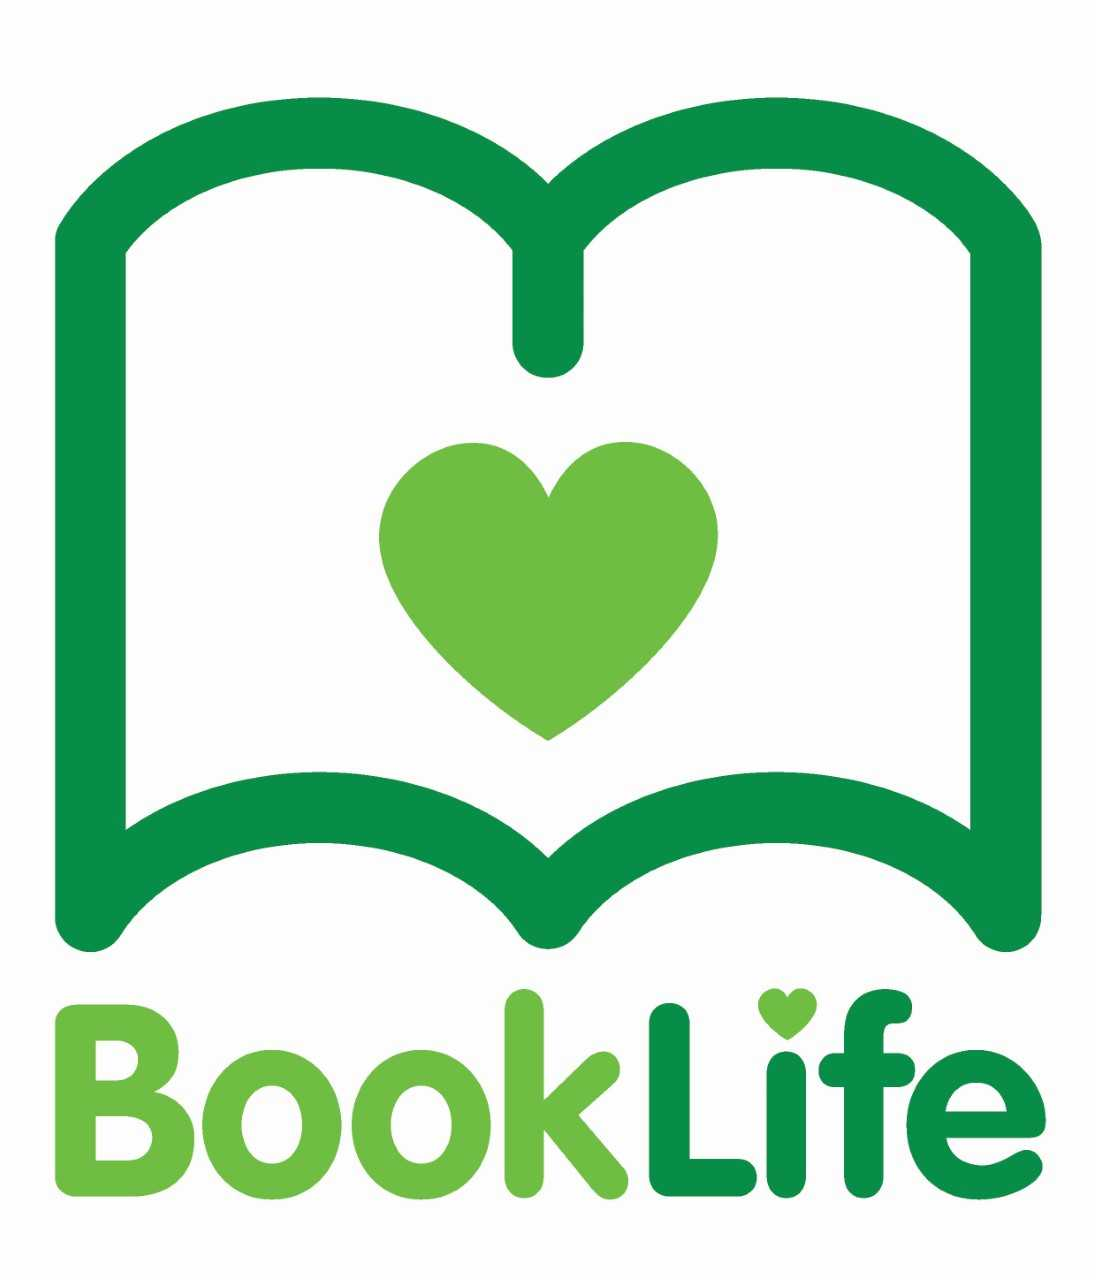 Booklife logo